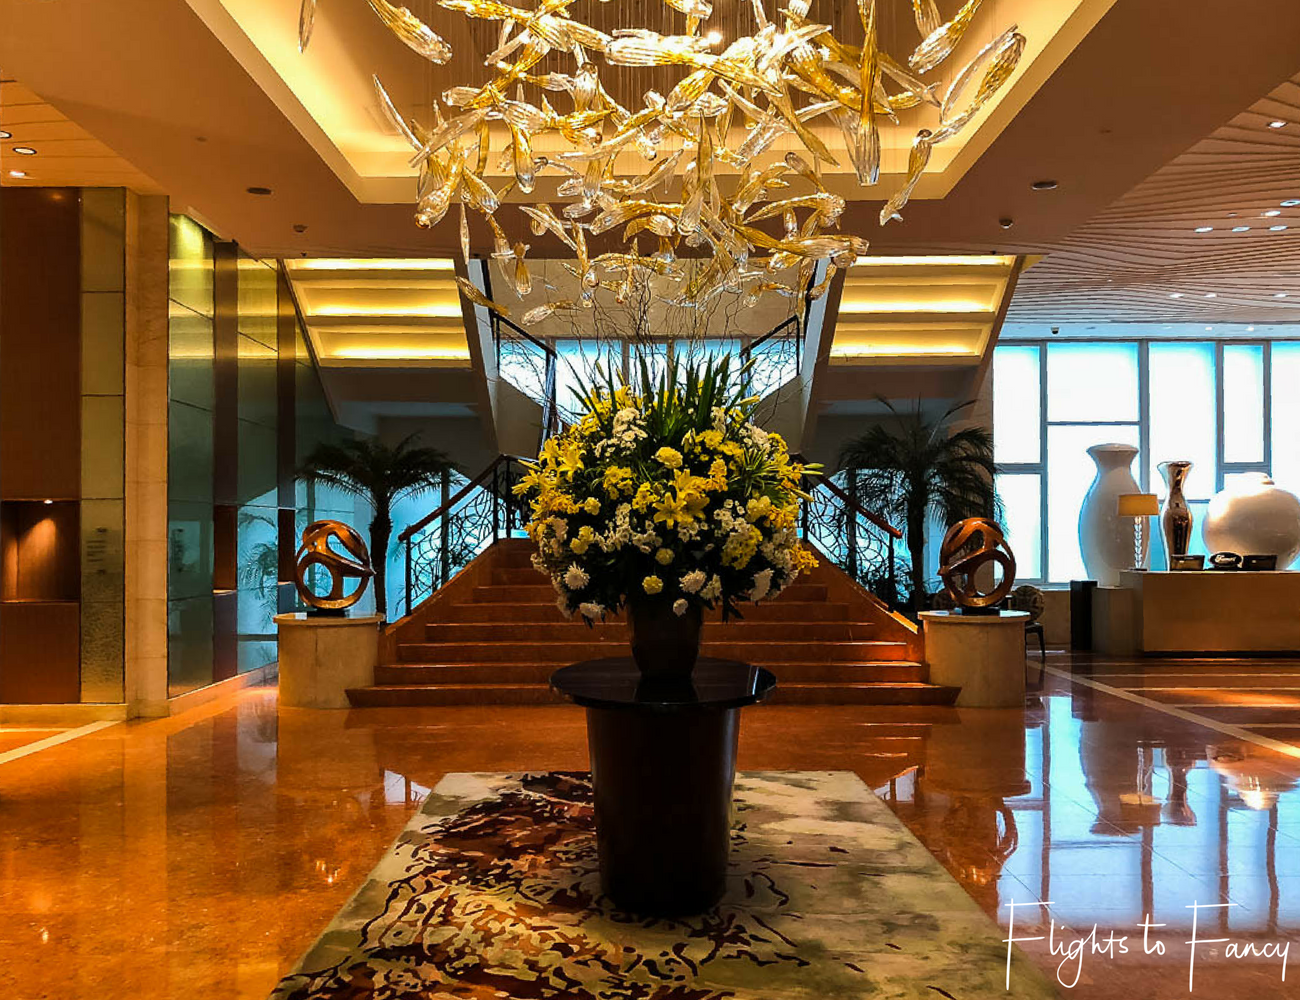 Flights to Fancy - Fairmont Makati Lobby